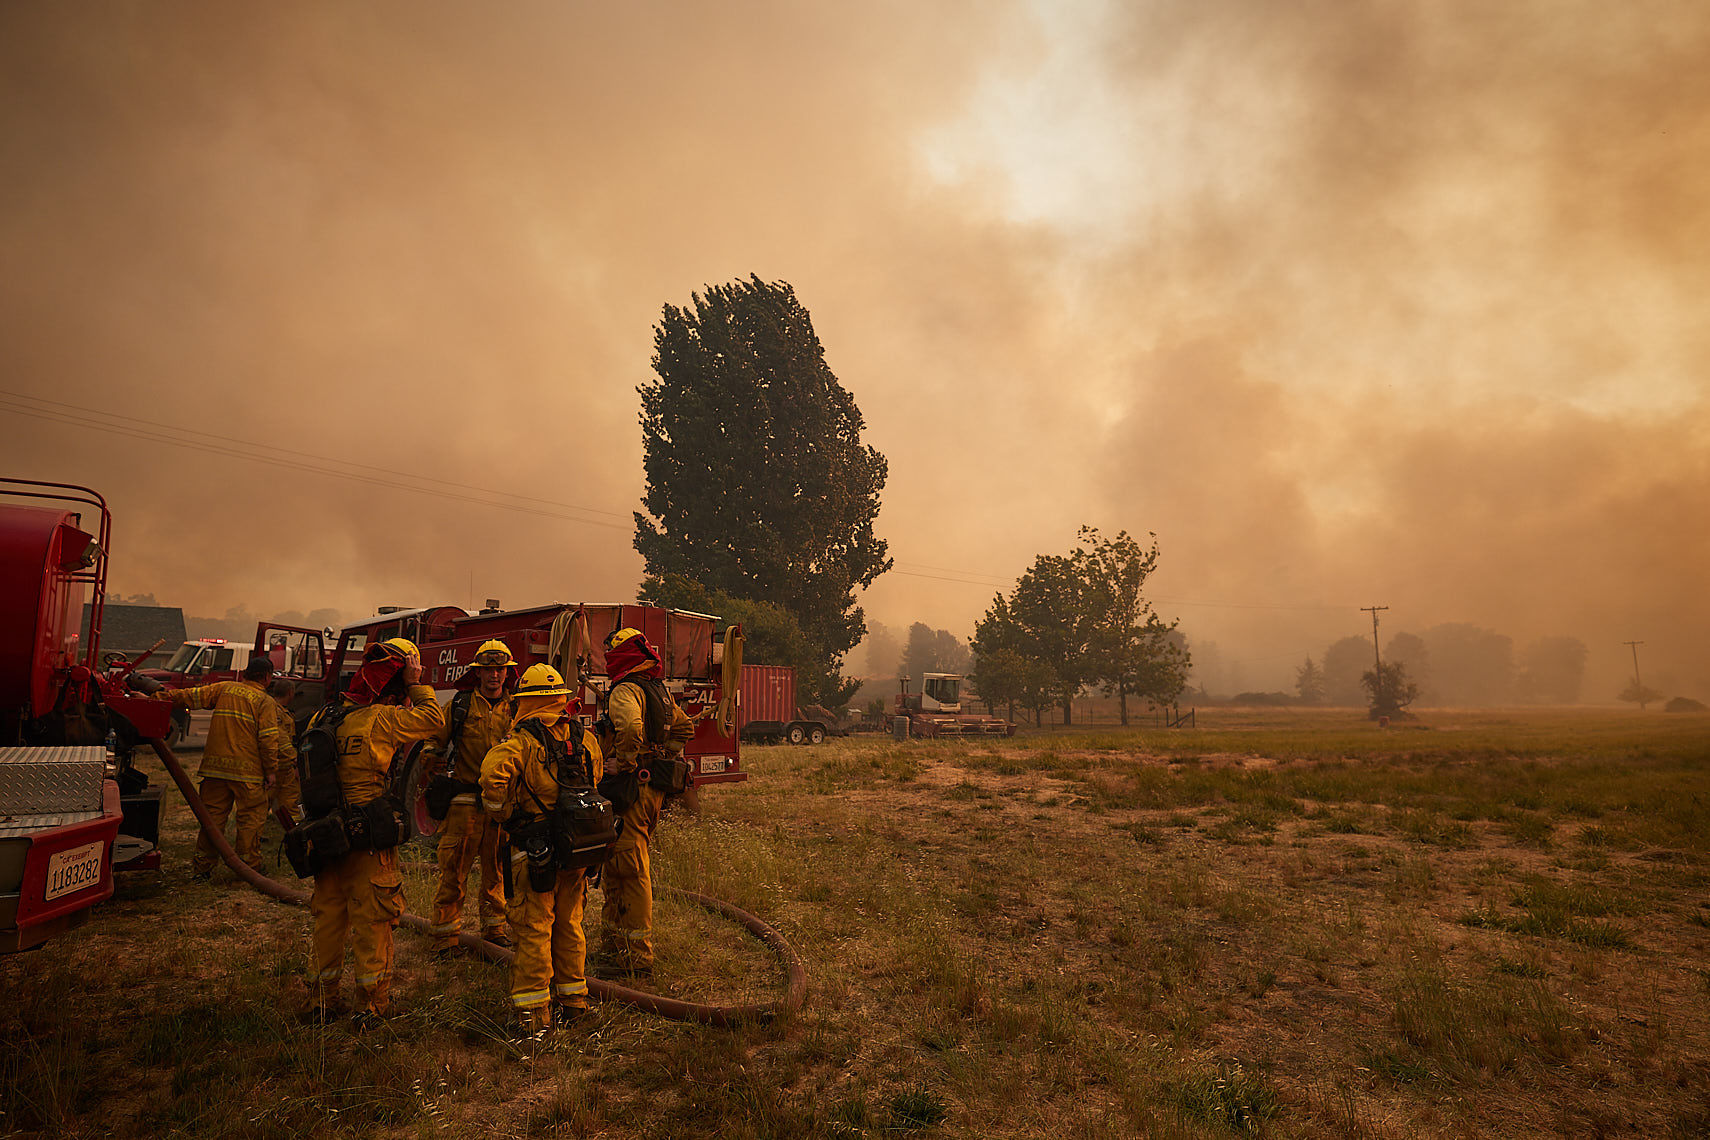 Firefighters regroup to battle wind-driven flames